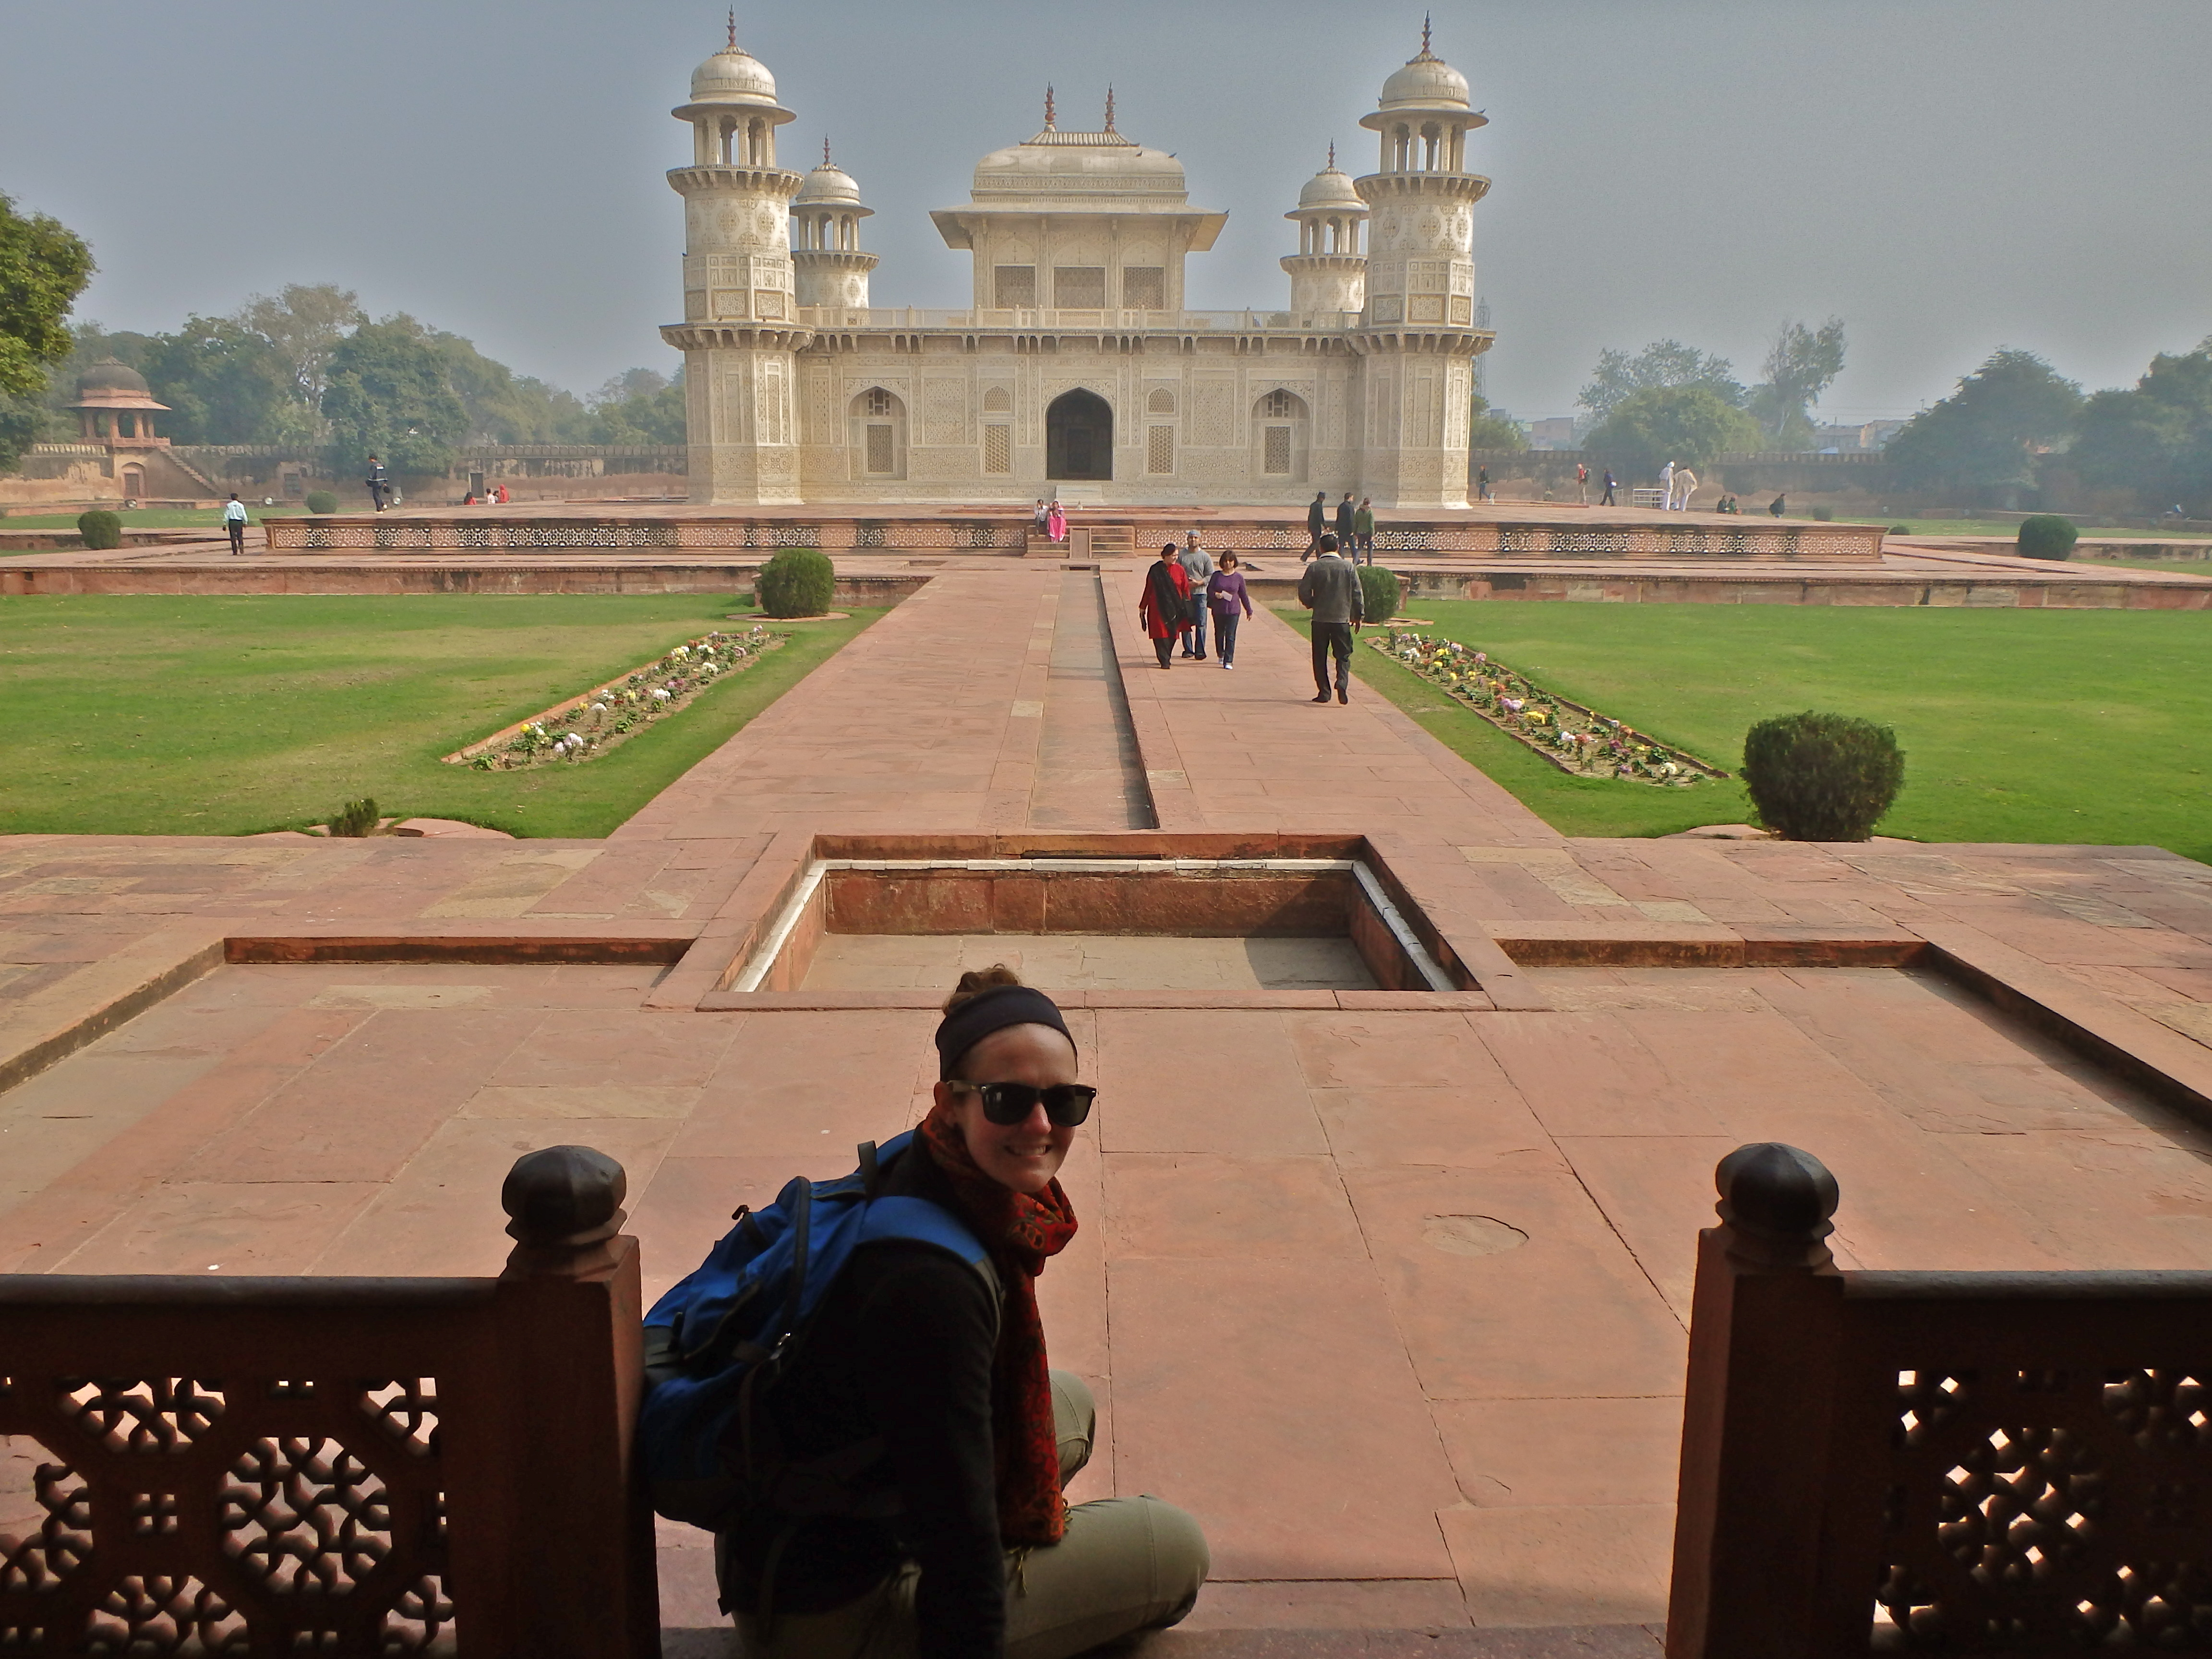 top tourist attractions in agra india travel blog for women travellers places to visit in rajasthan where to go in agra